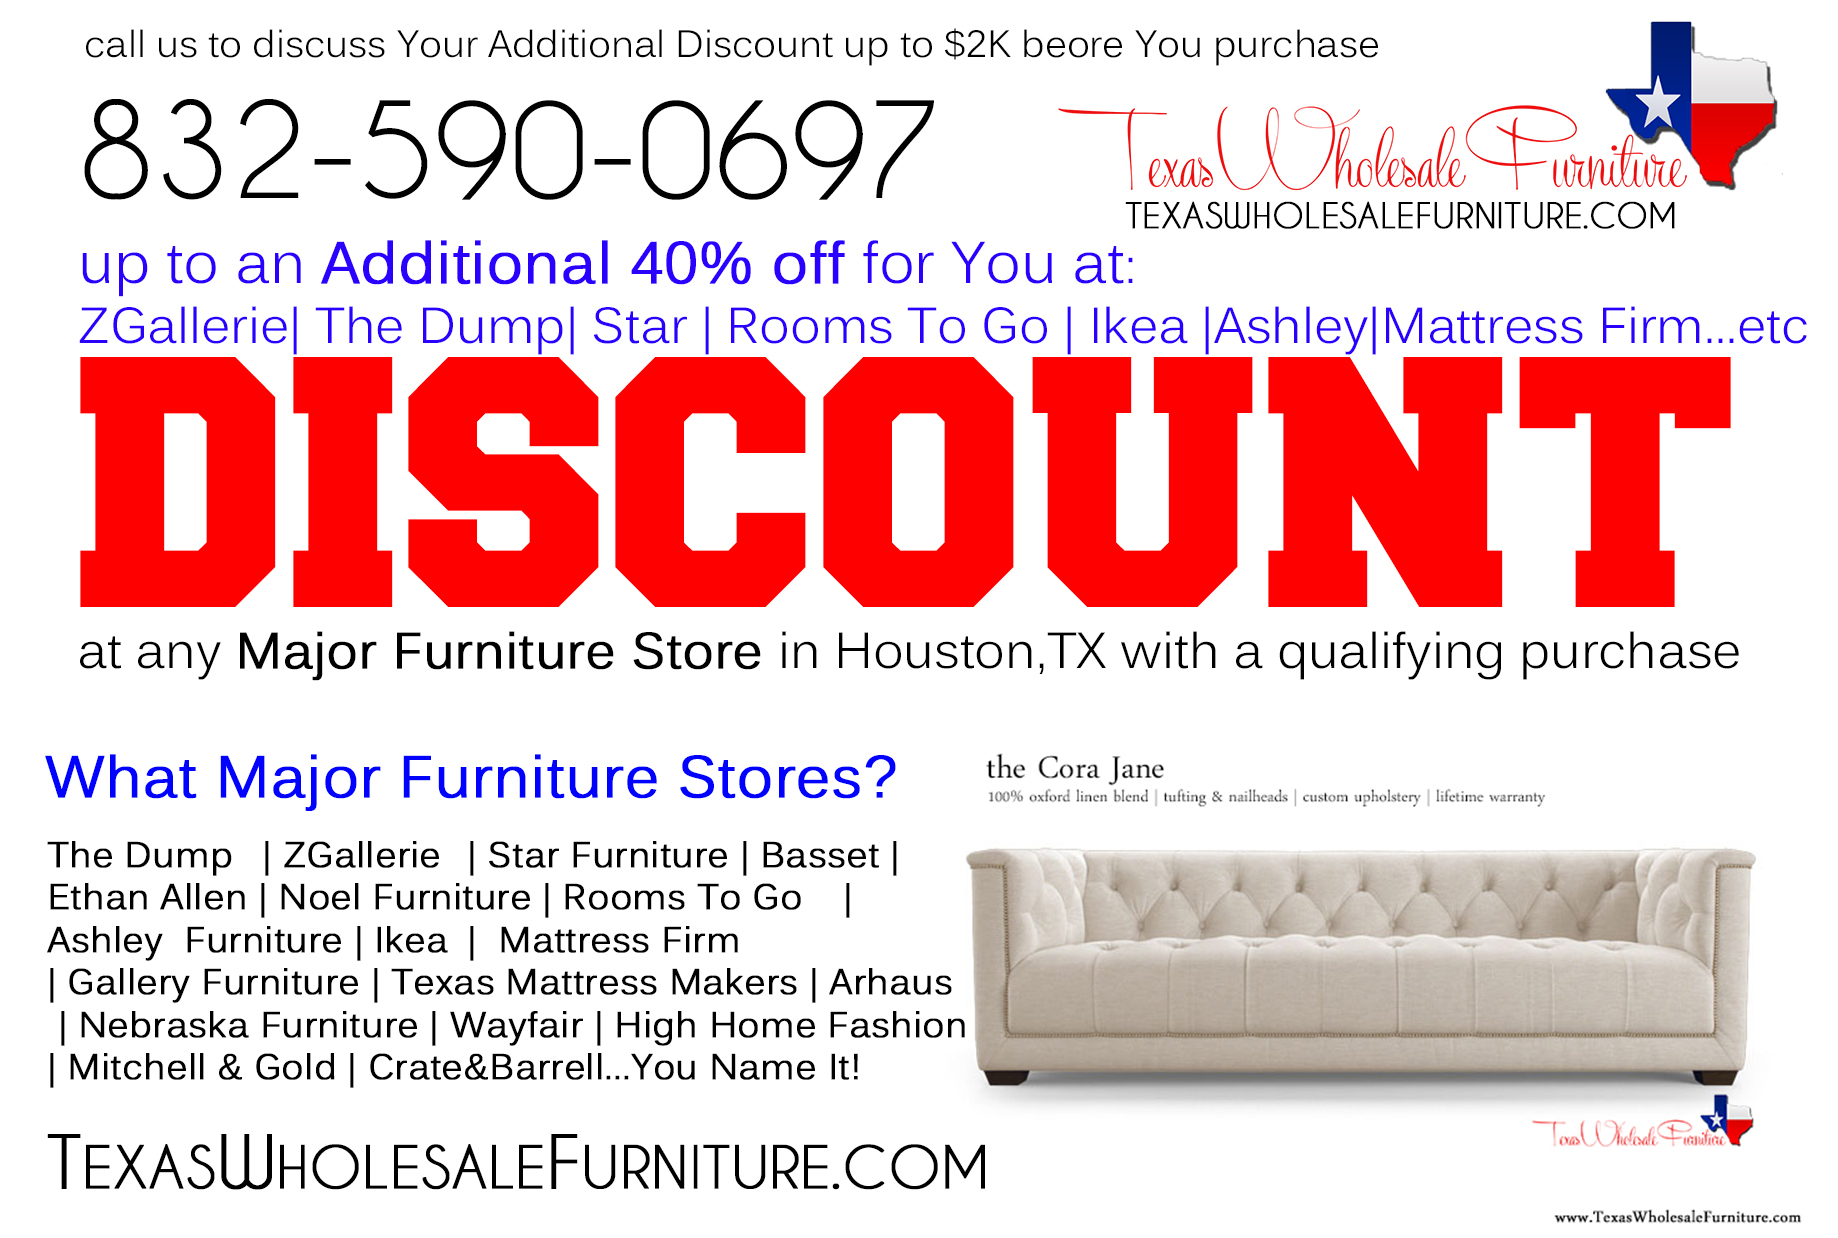 Discount At Any Furniture Store In Houston Tx Texas Wholesale Furniture Co